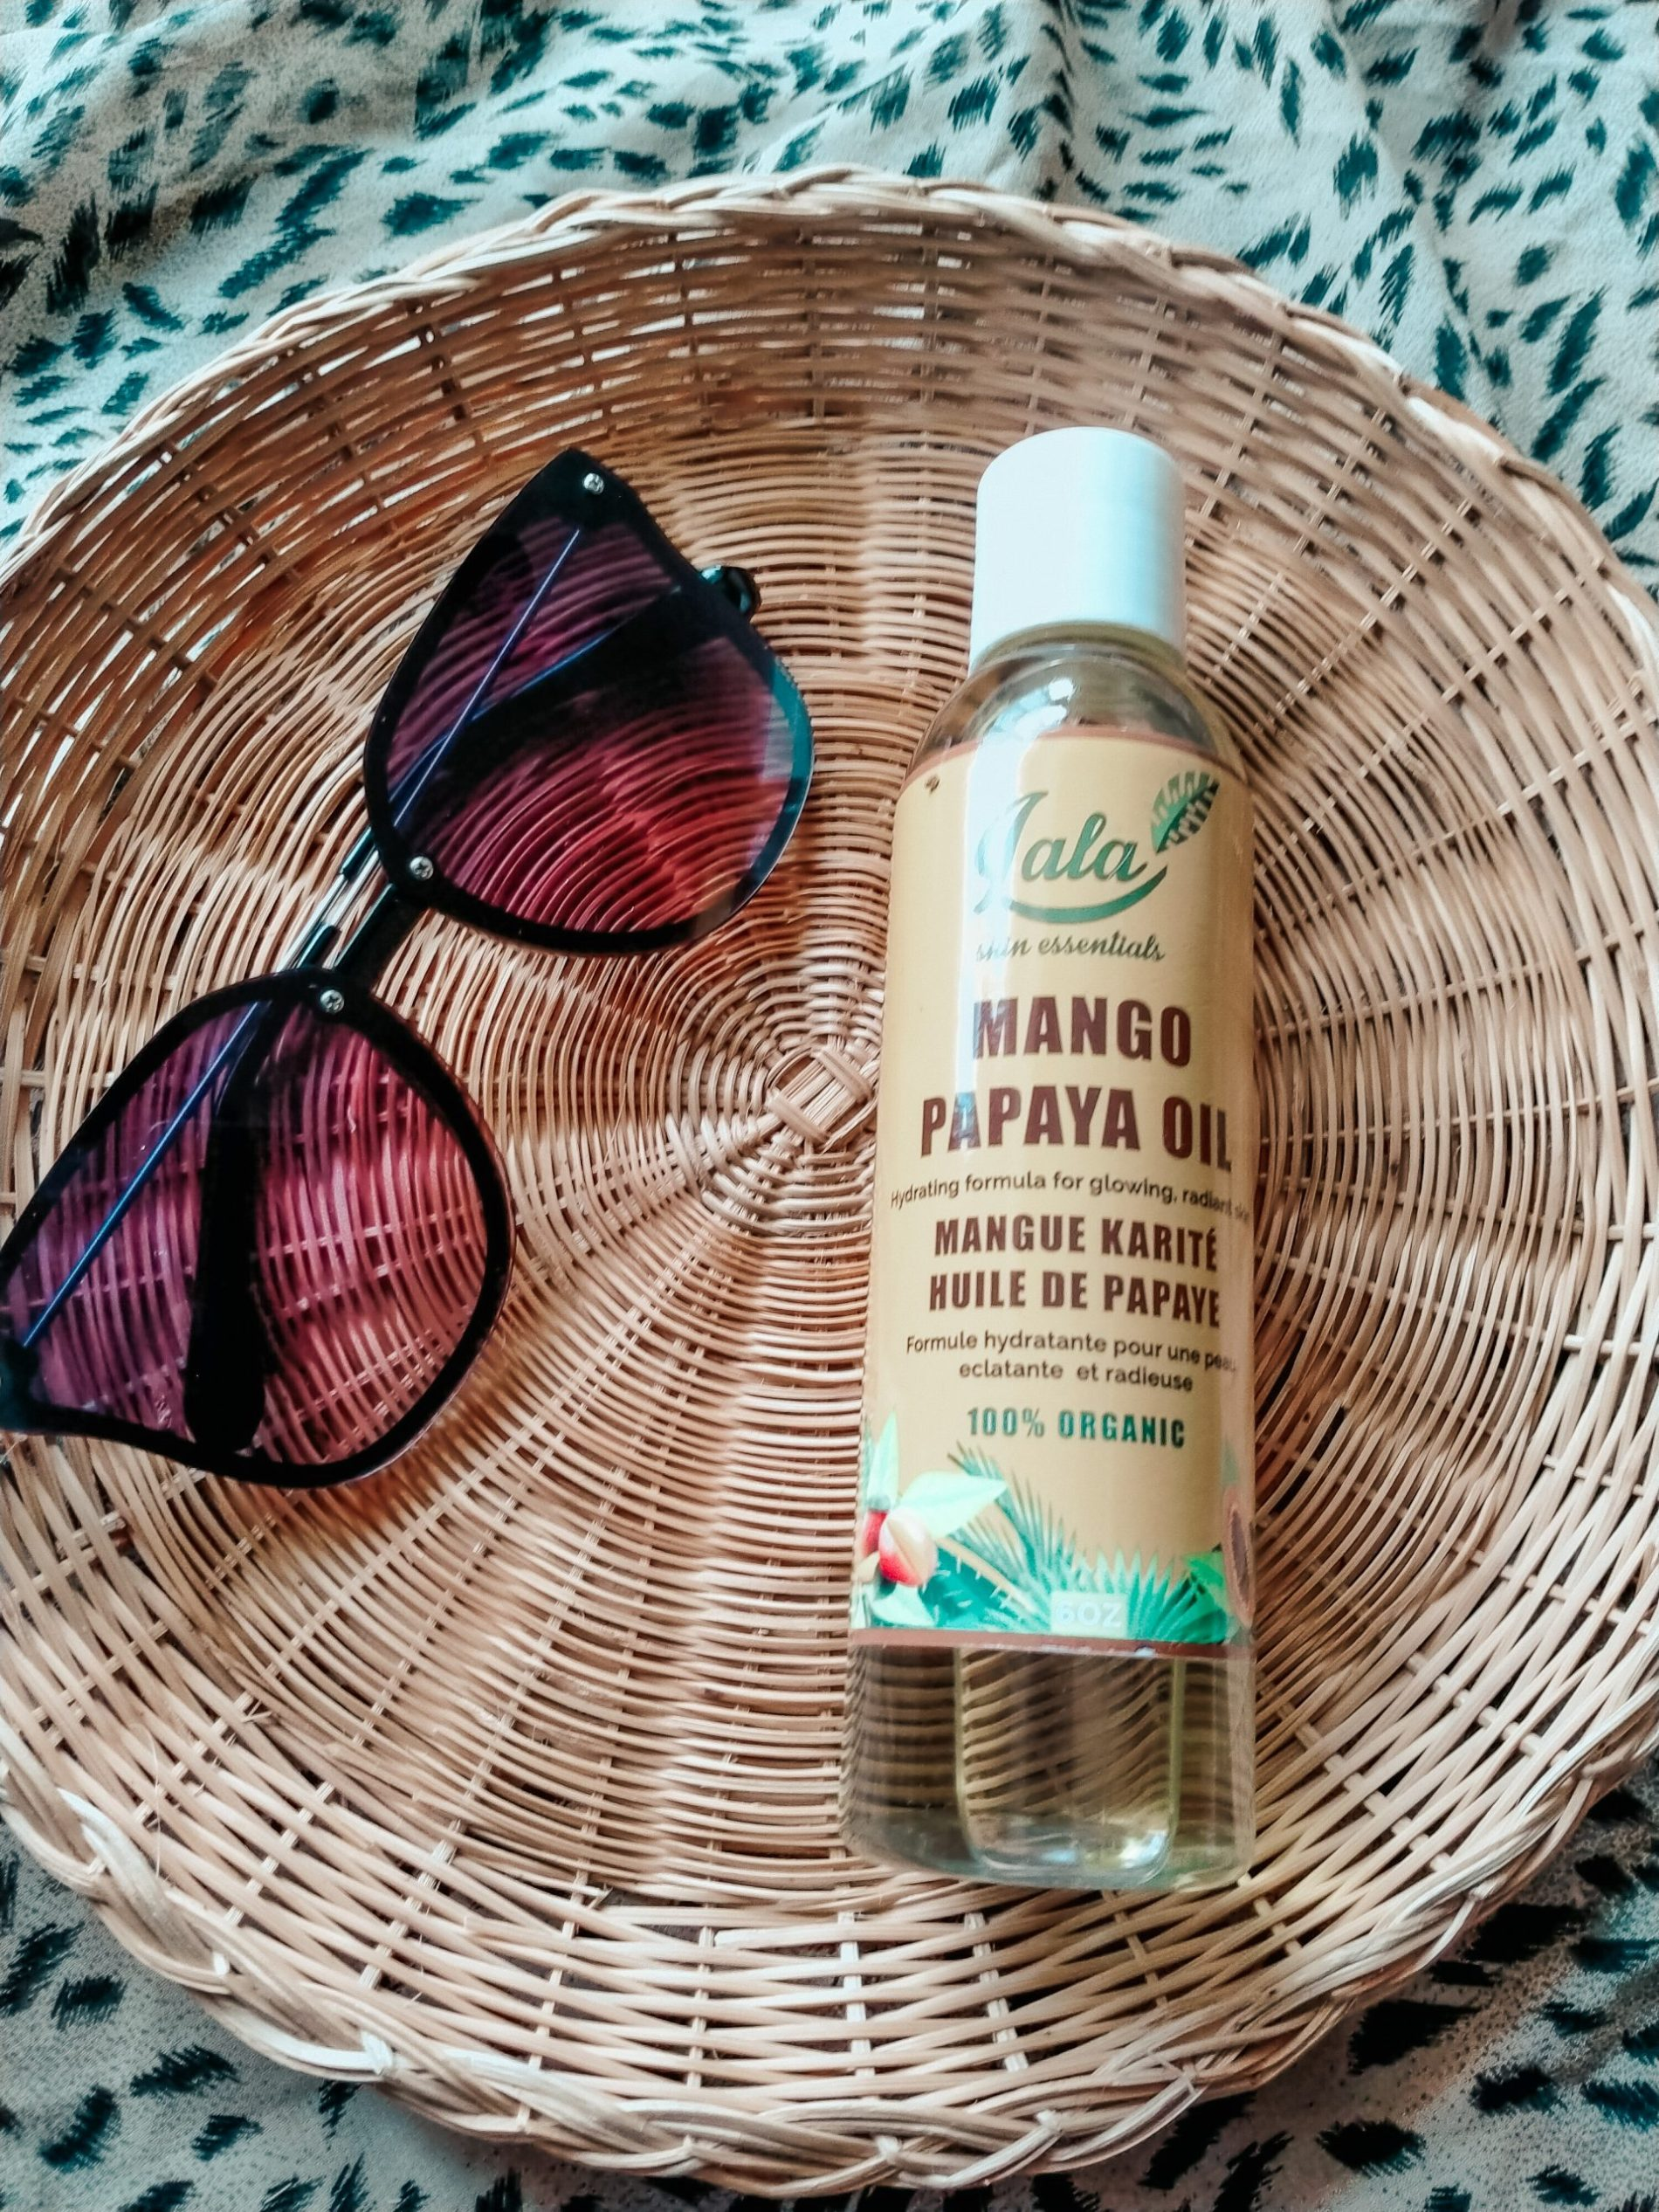 This Mango Papaya Body Oil Is A Multitasker Soon to Replace Your Body Lotion!